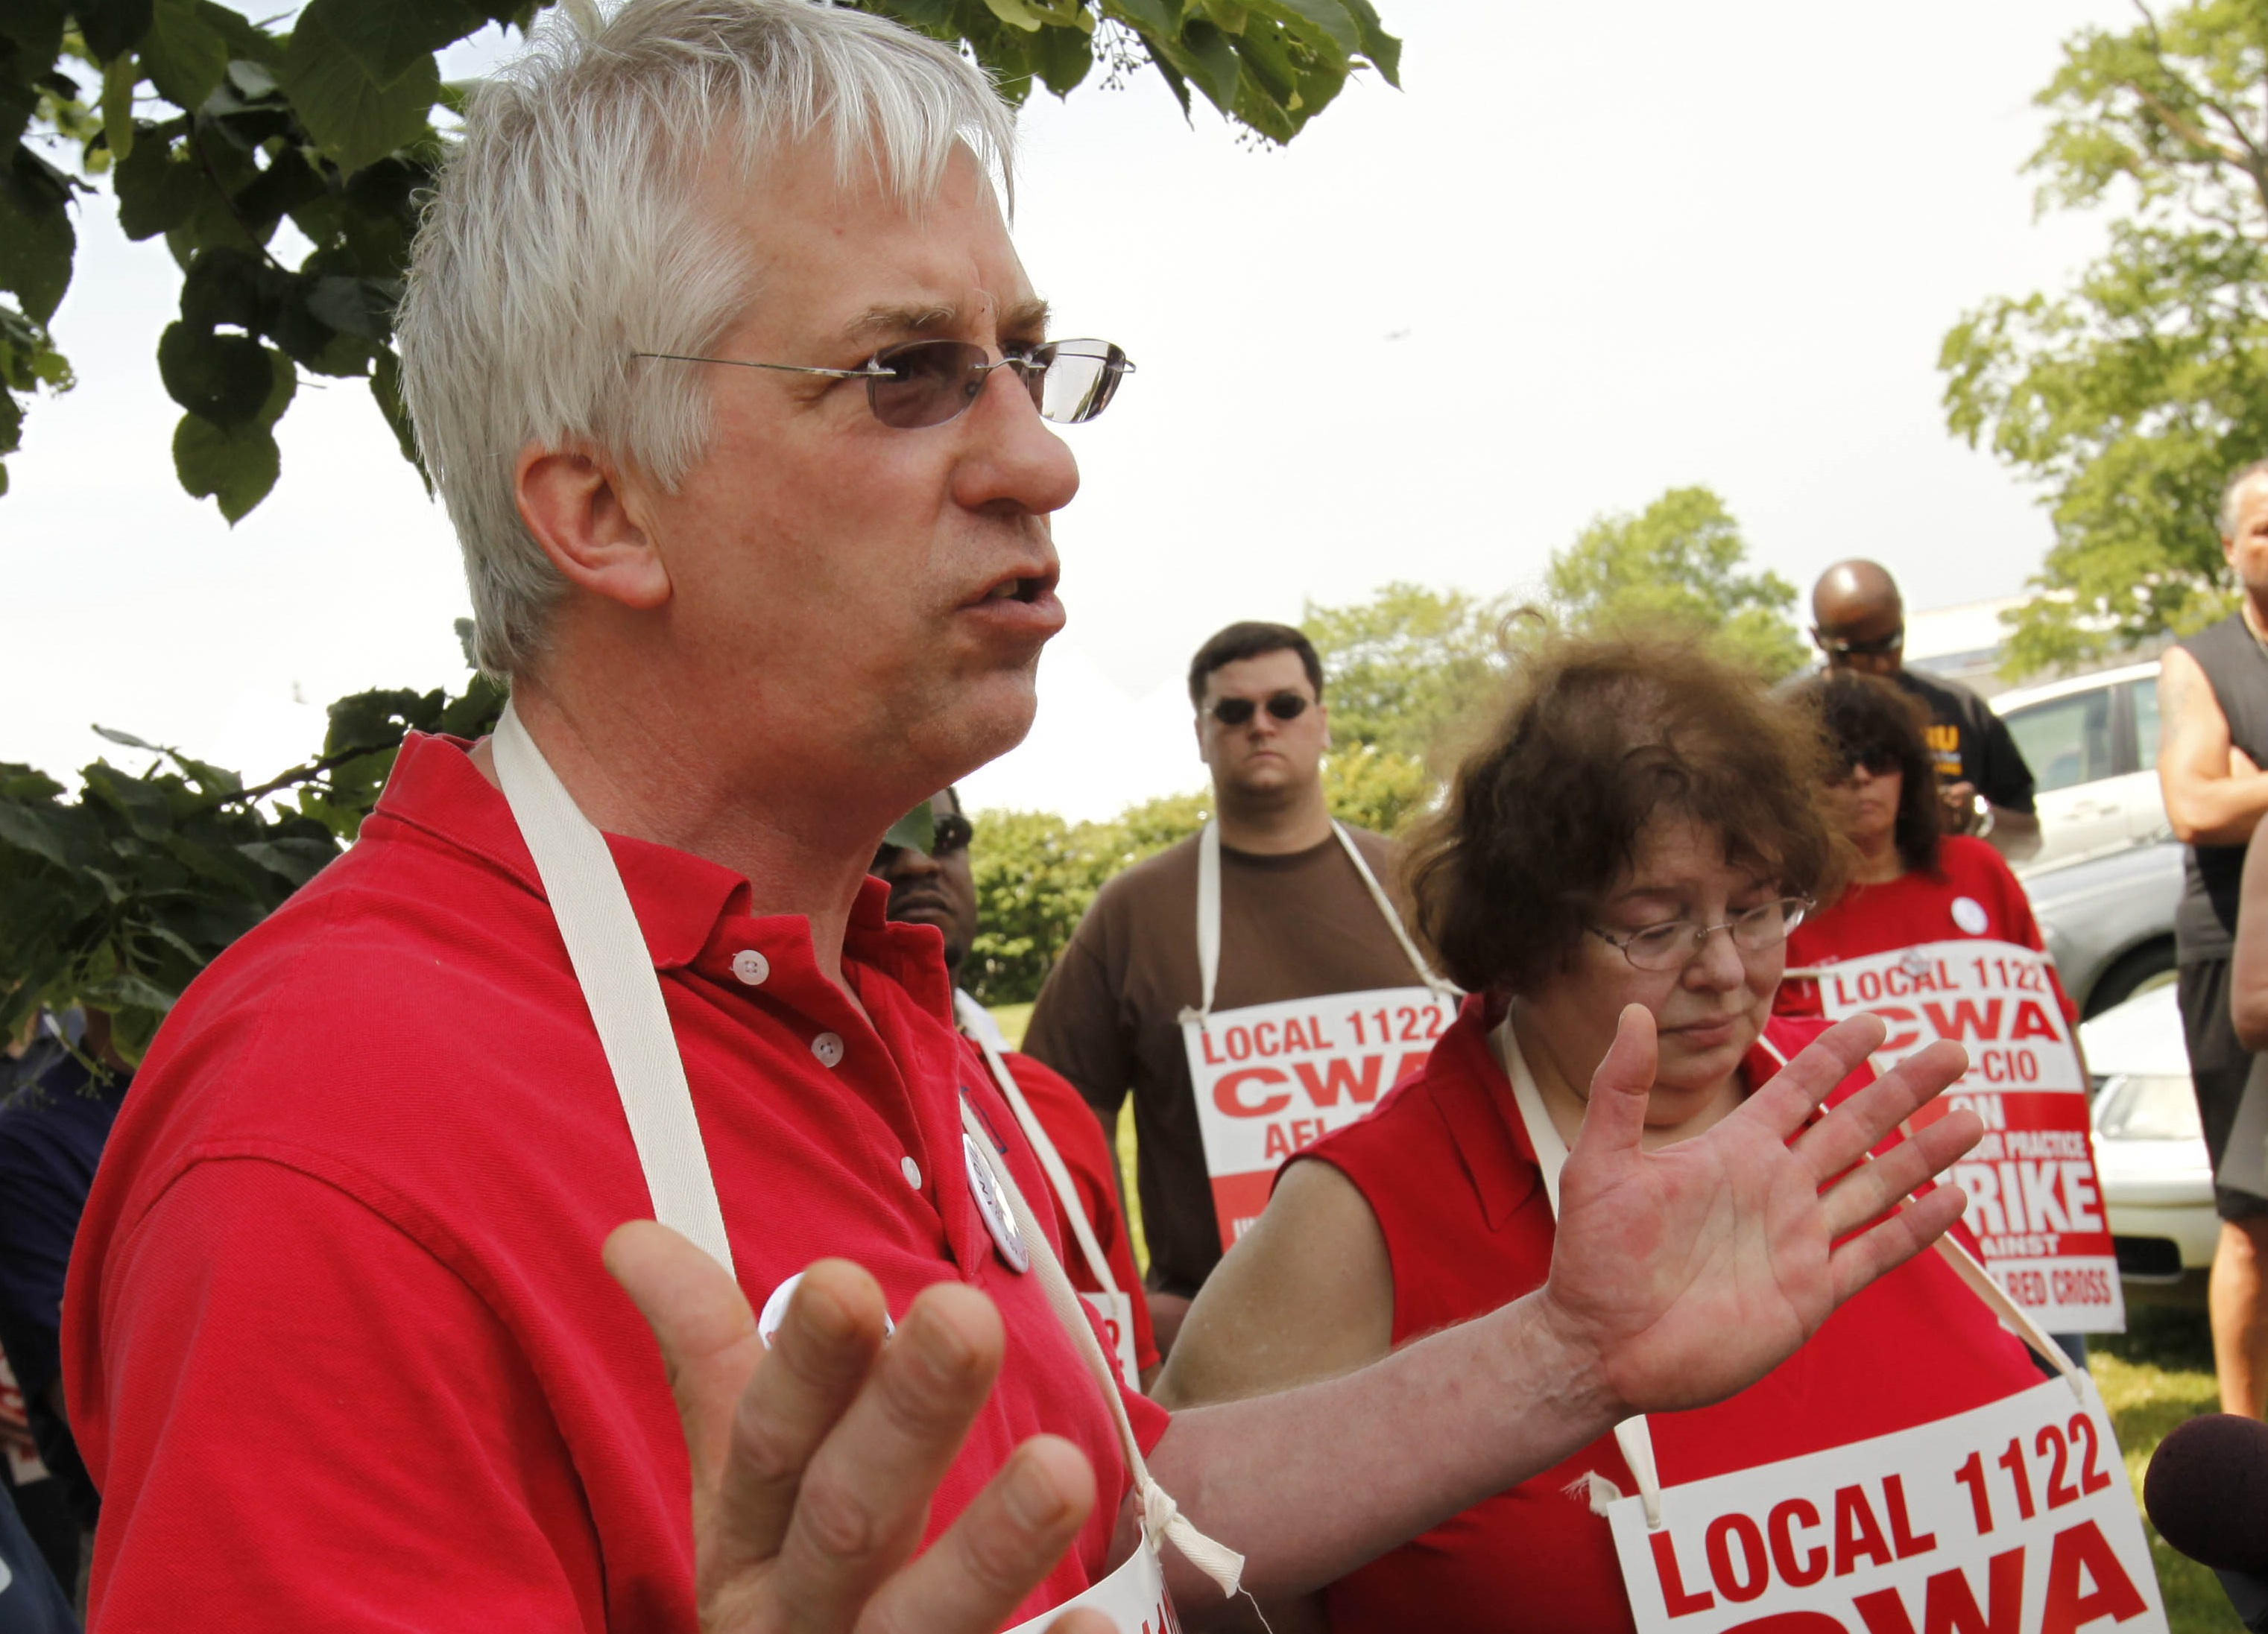 CWA Local 1122 president James Wagner, shown in 2010. (Derek Gee/Buffalo News file photo)